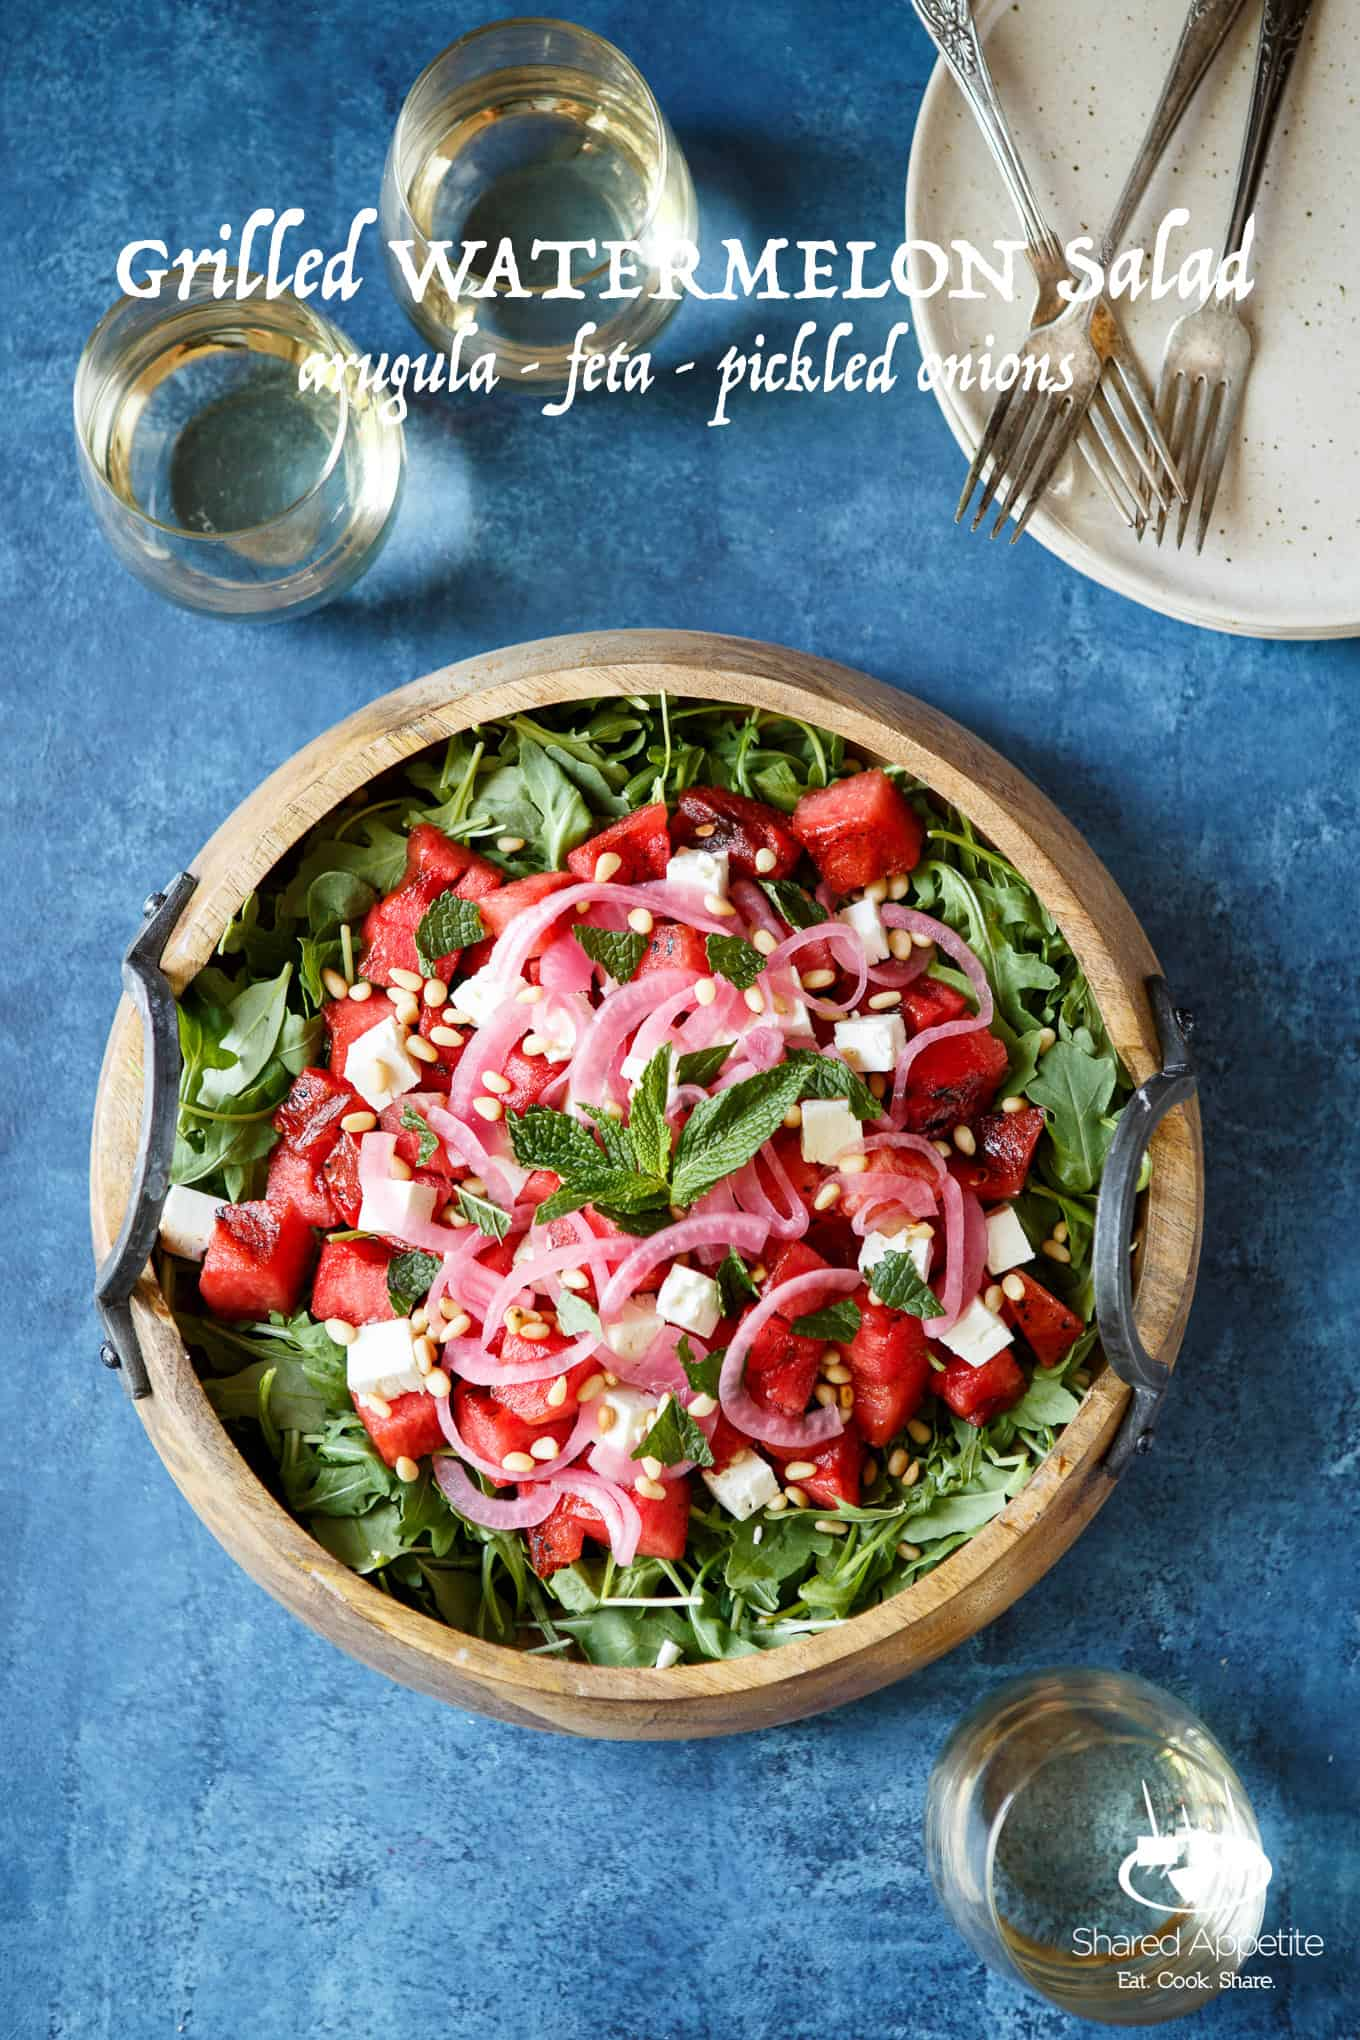 Grilled Watermelon Salad with Arugula, Feta, and Pickled Onions | sharedappetite.com